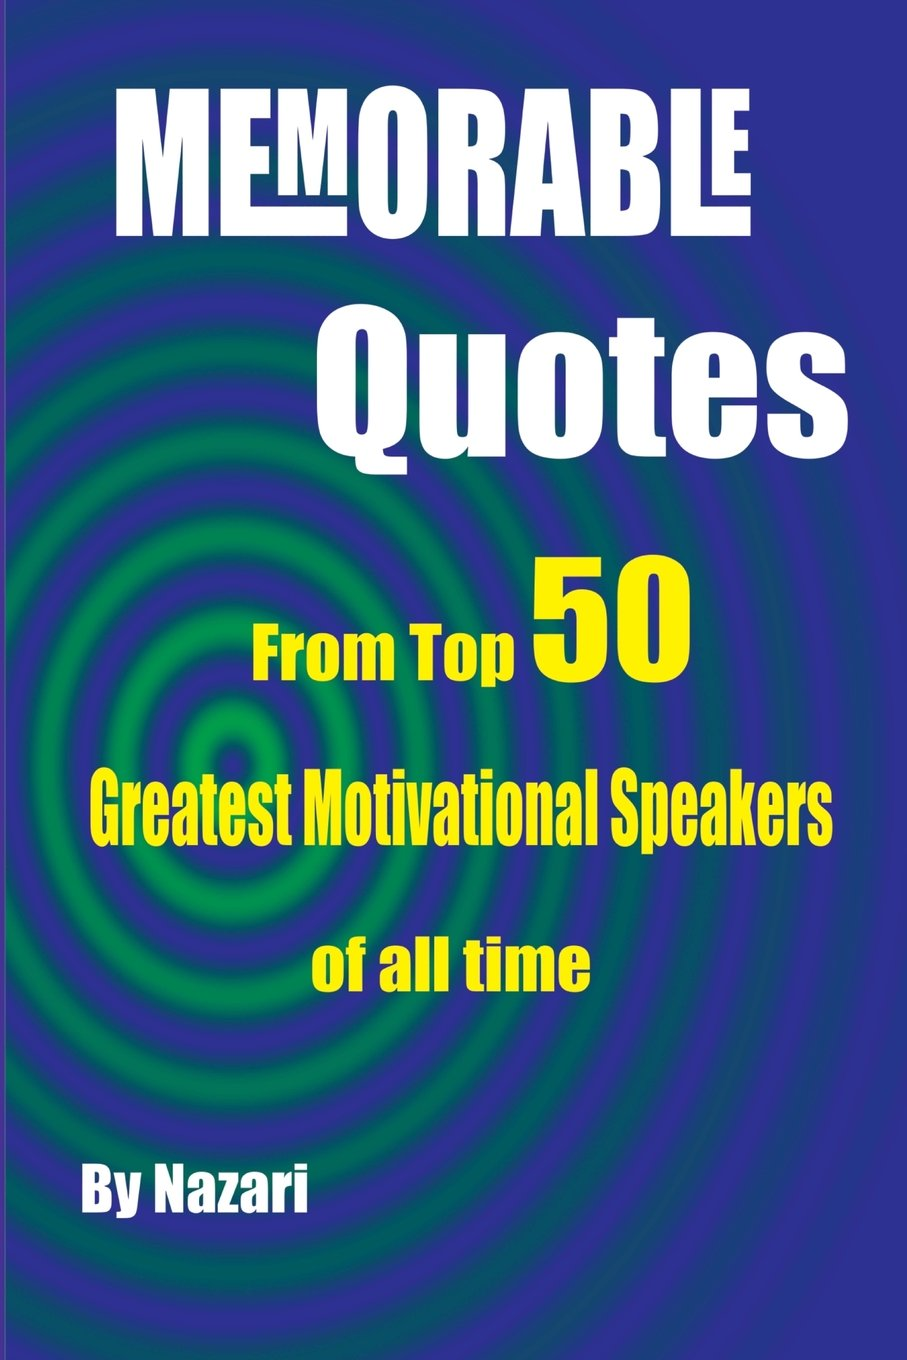 Memorable Quotes: From Top 50 Greatest motivational Speakers of all